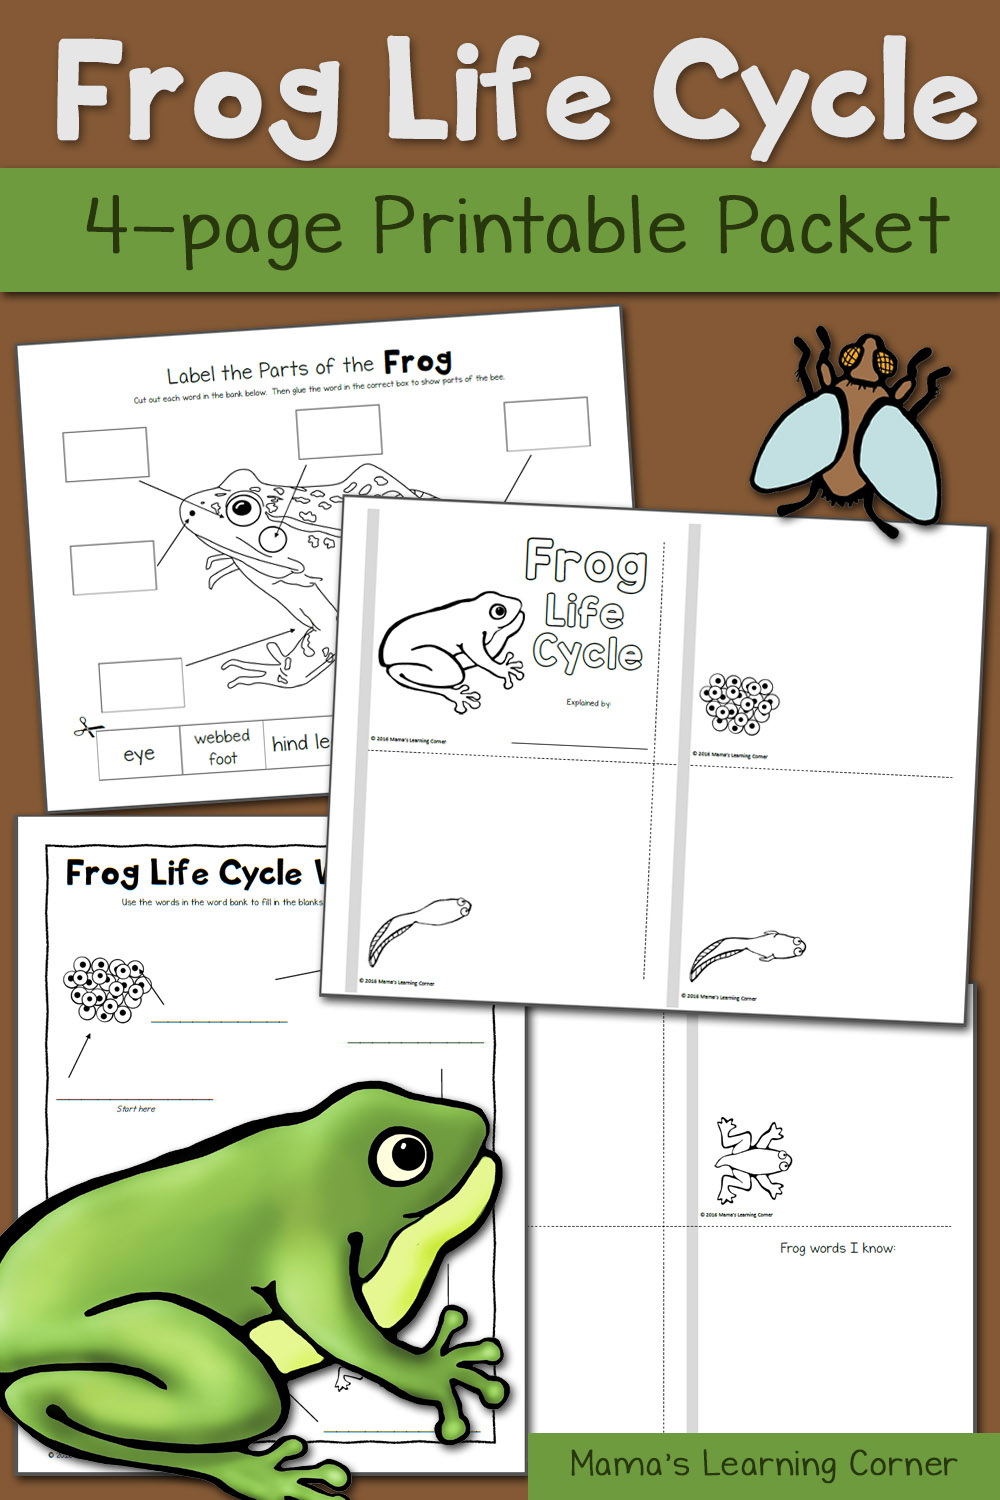 Frog Life Cycle Worksheets - Mamas Learning Corner | Life Cycle Of A Frog Free Printable Worksheets